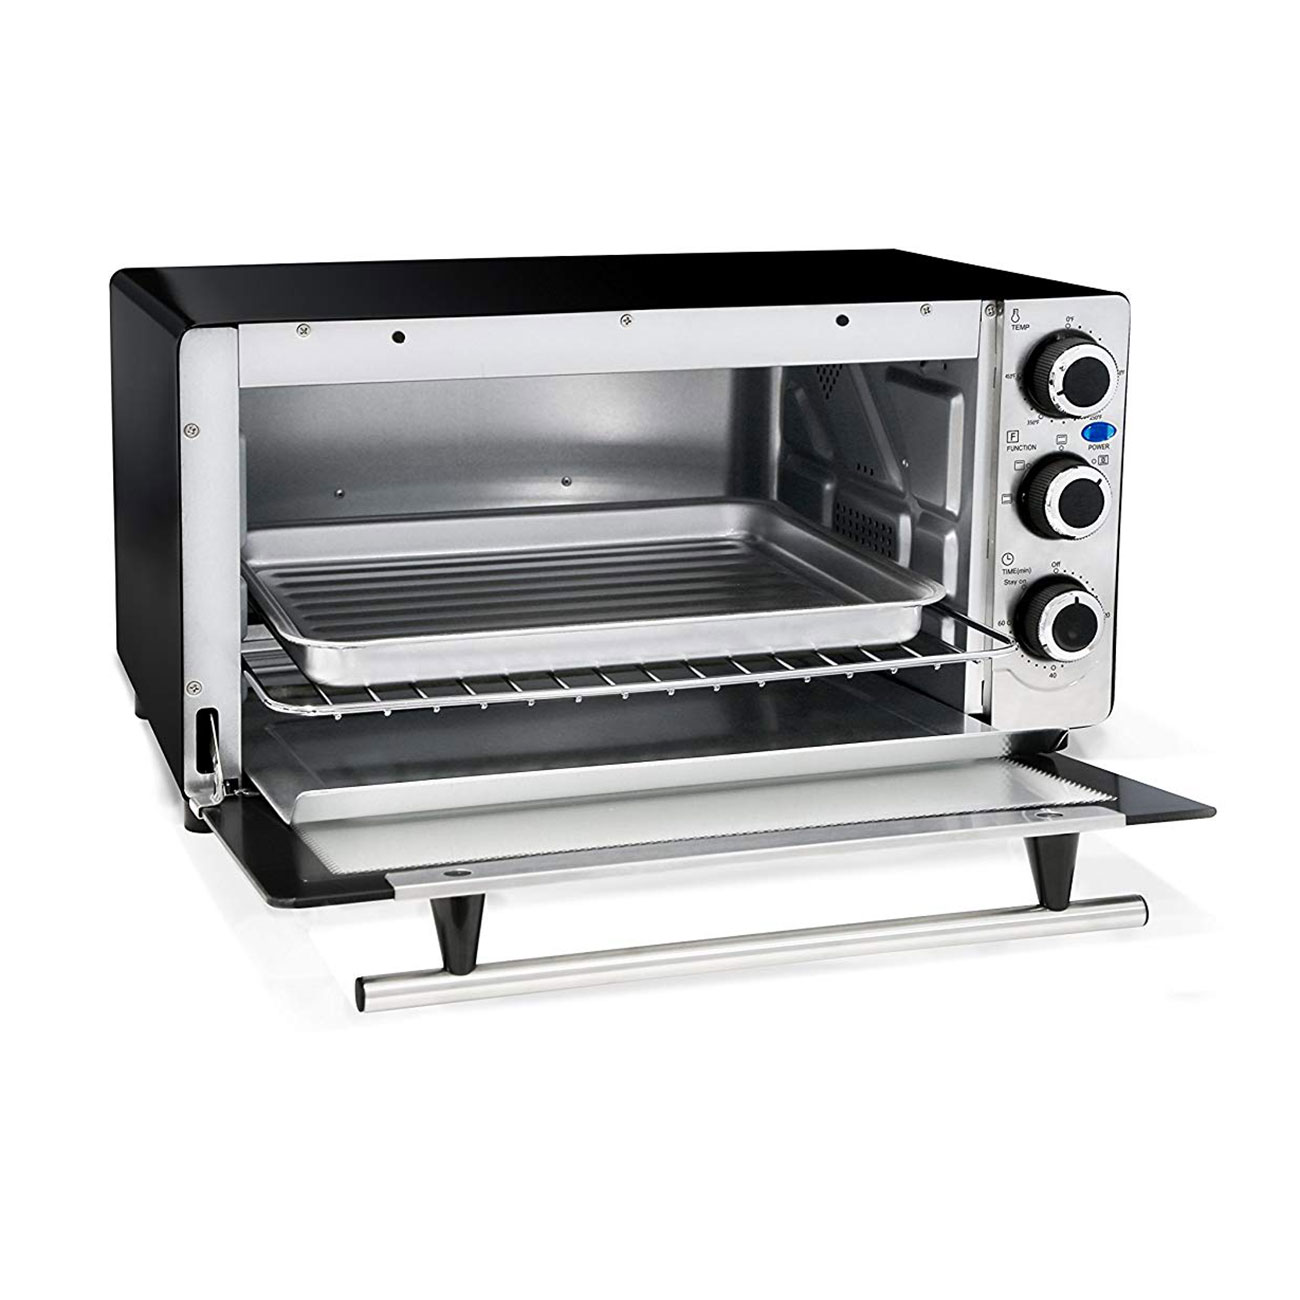 Details about MaxiMatic Elite Platinum 6 Slice Stainless Steel Convection  Toaster Oven Broiler